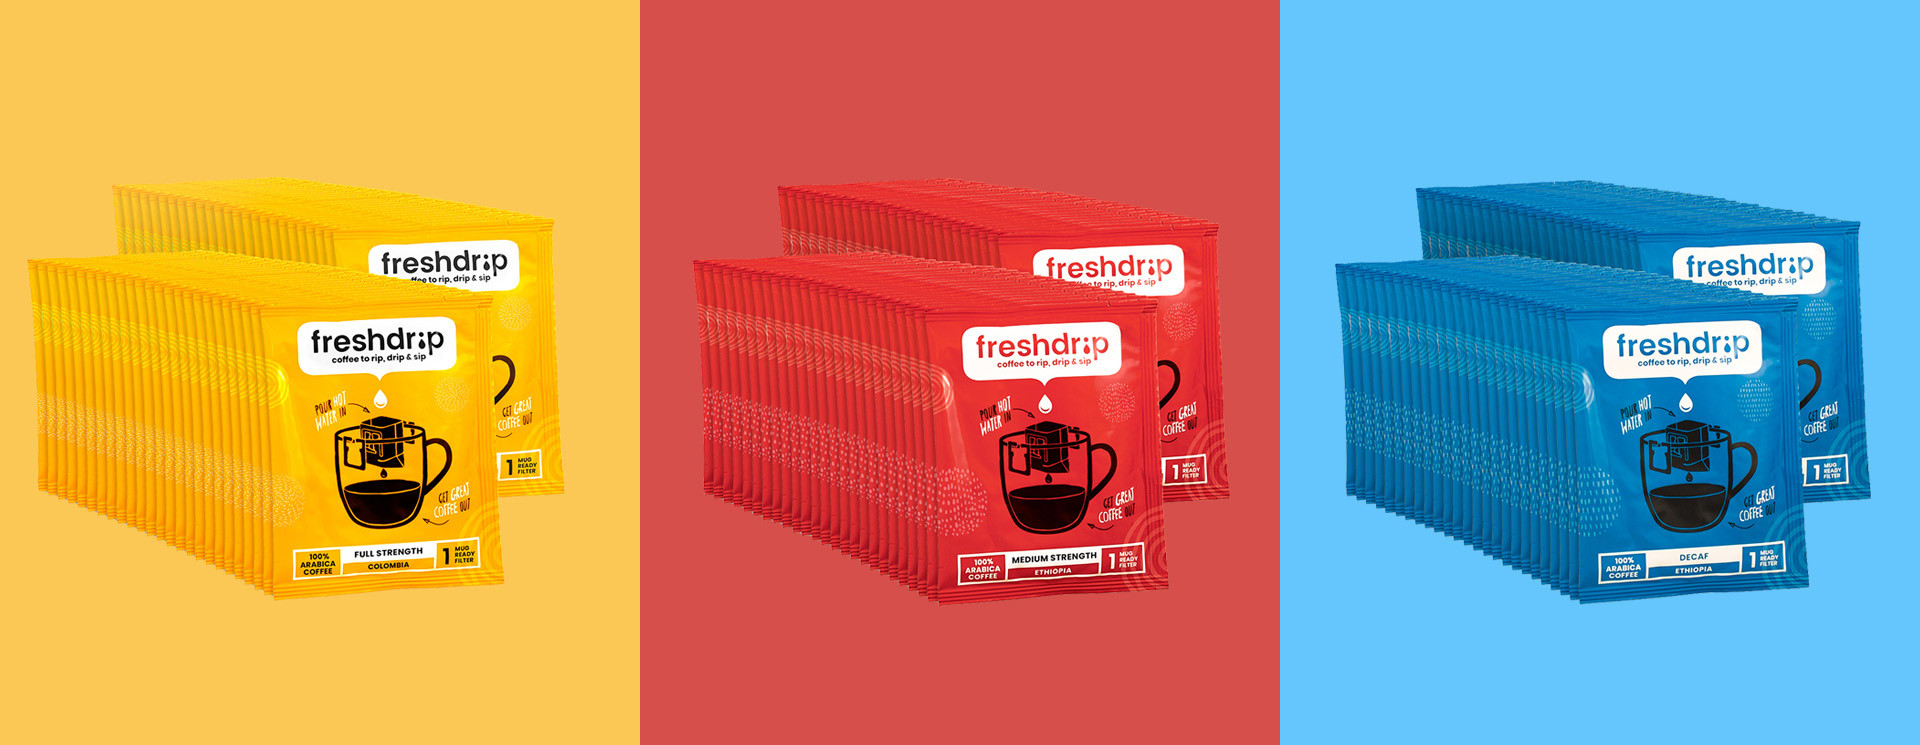 Freshdrip Large Box With 100 Coffee Filters